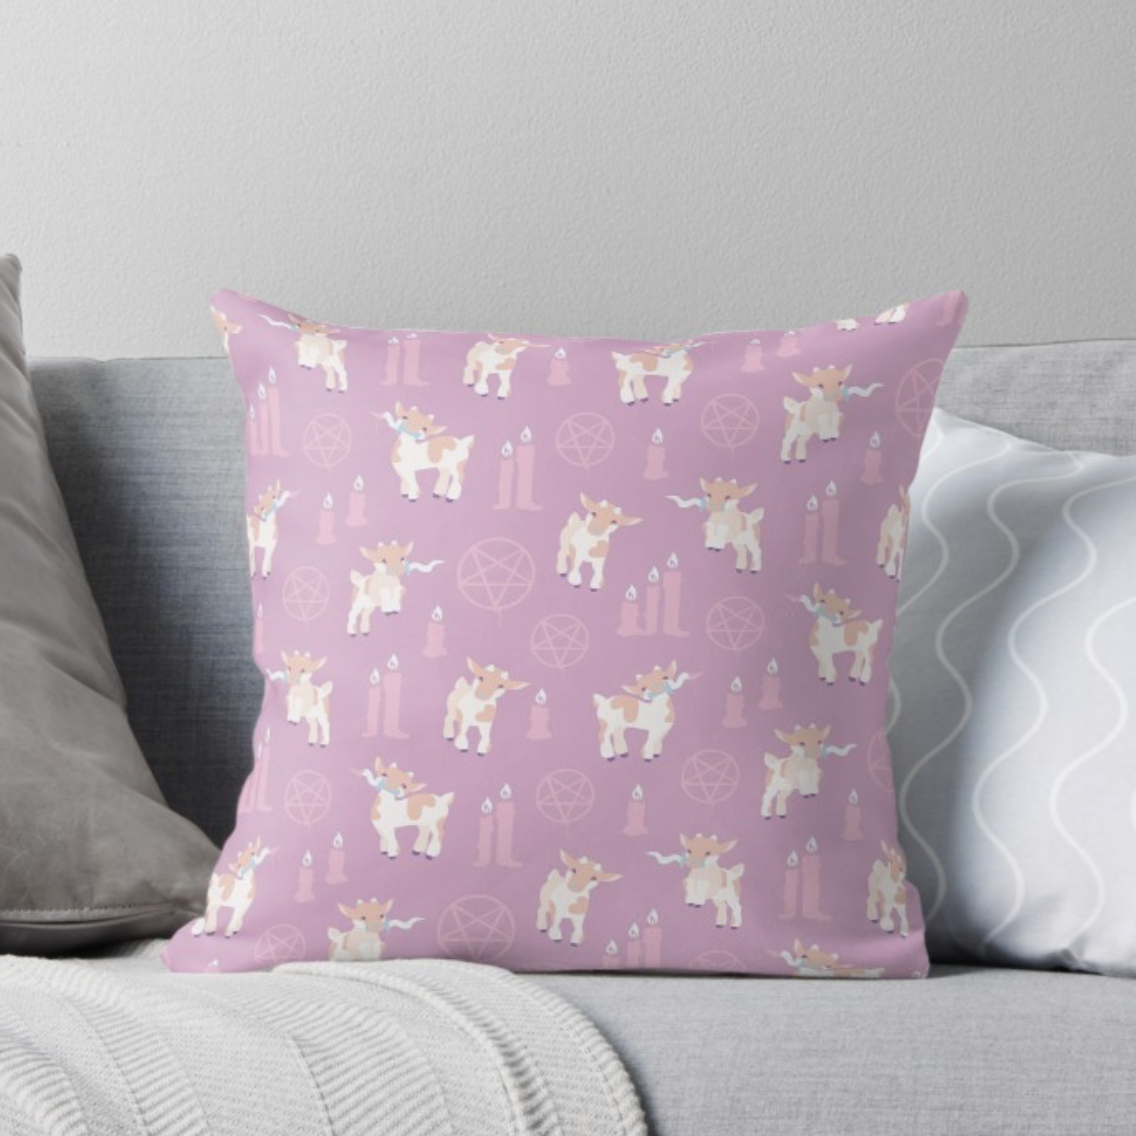 The kids are alright throw pillow from Redbubble